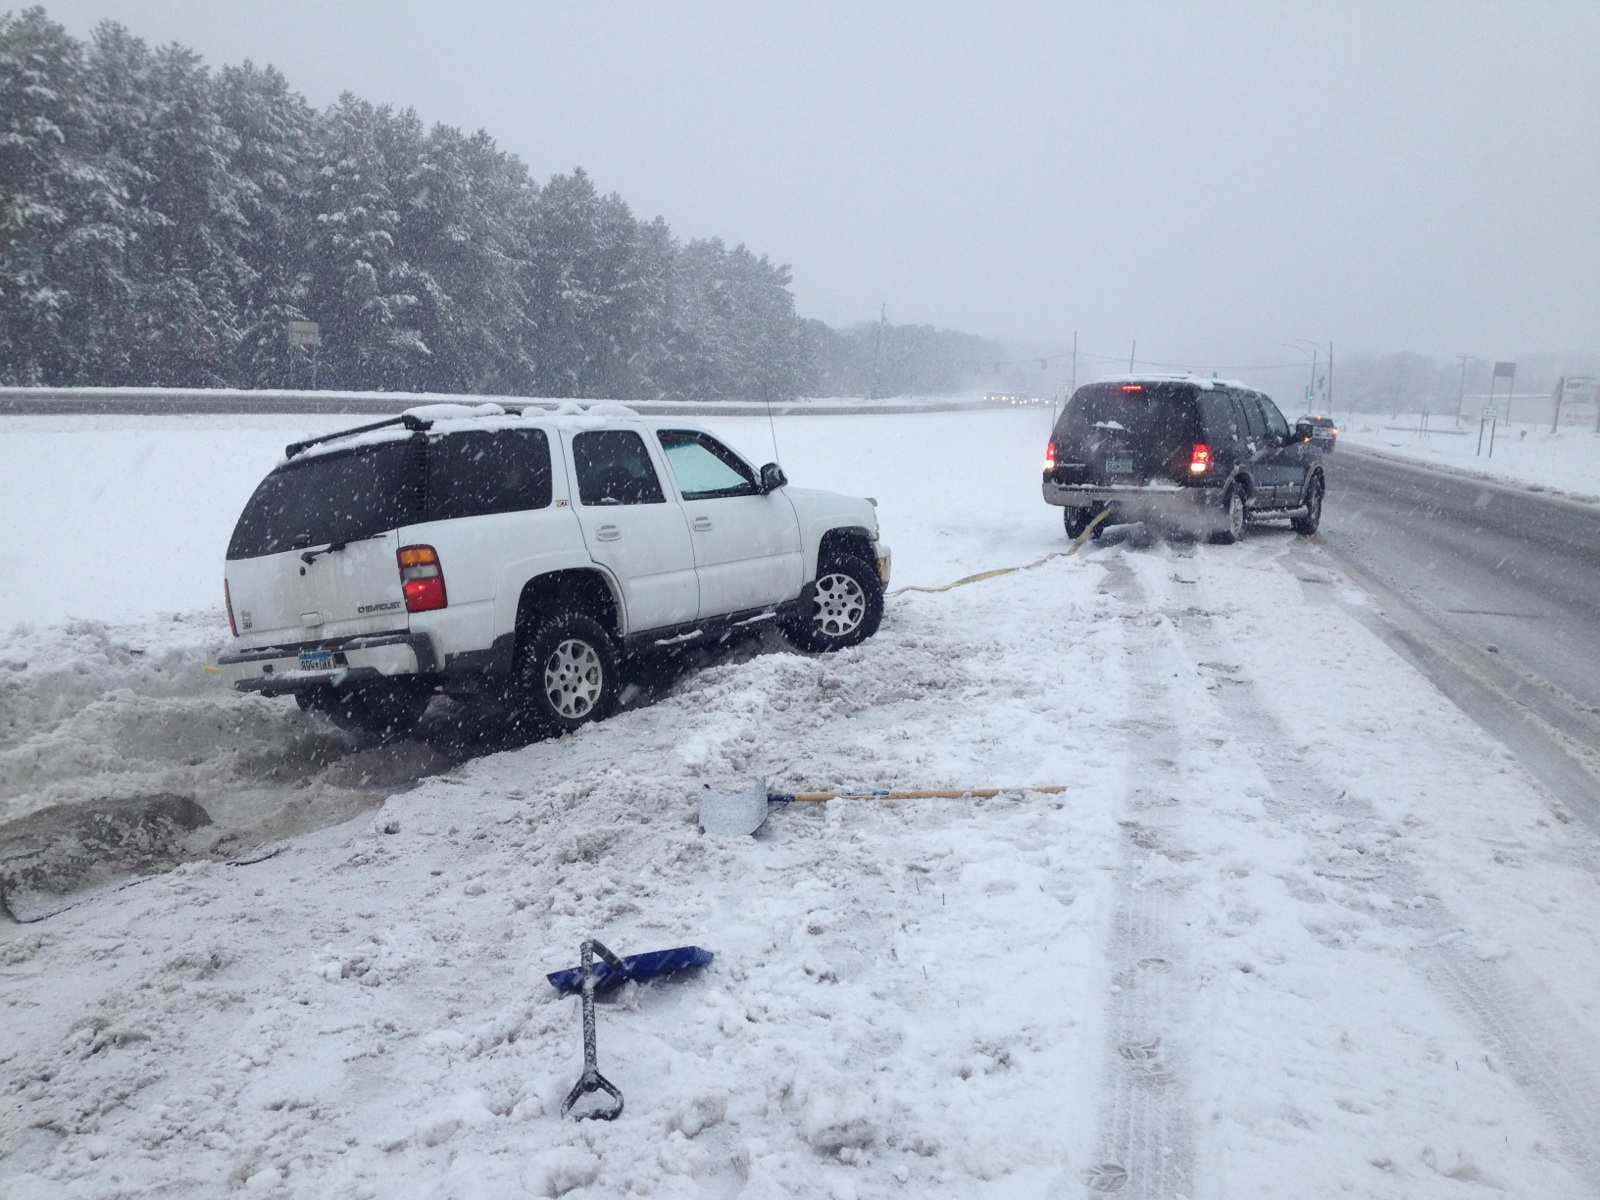 Getting towed - Minnesota winter storm - OSI Physical Therapy 3